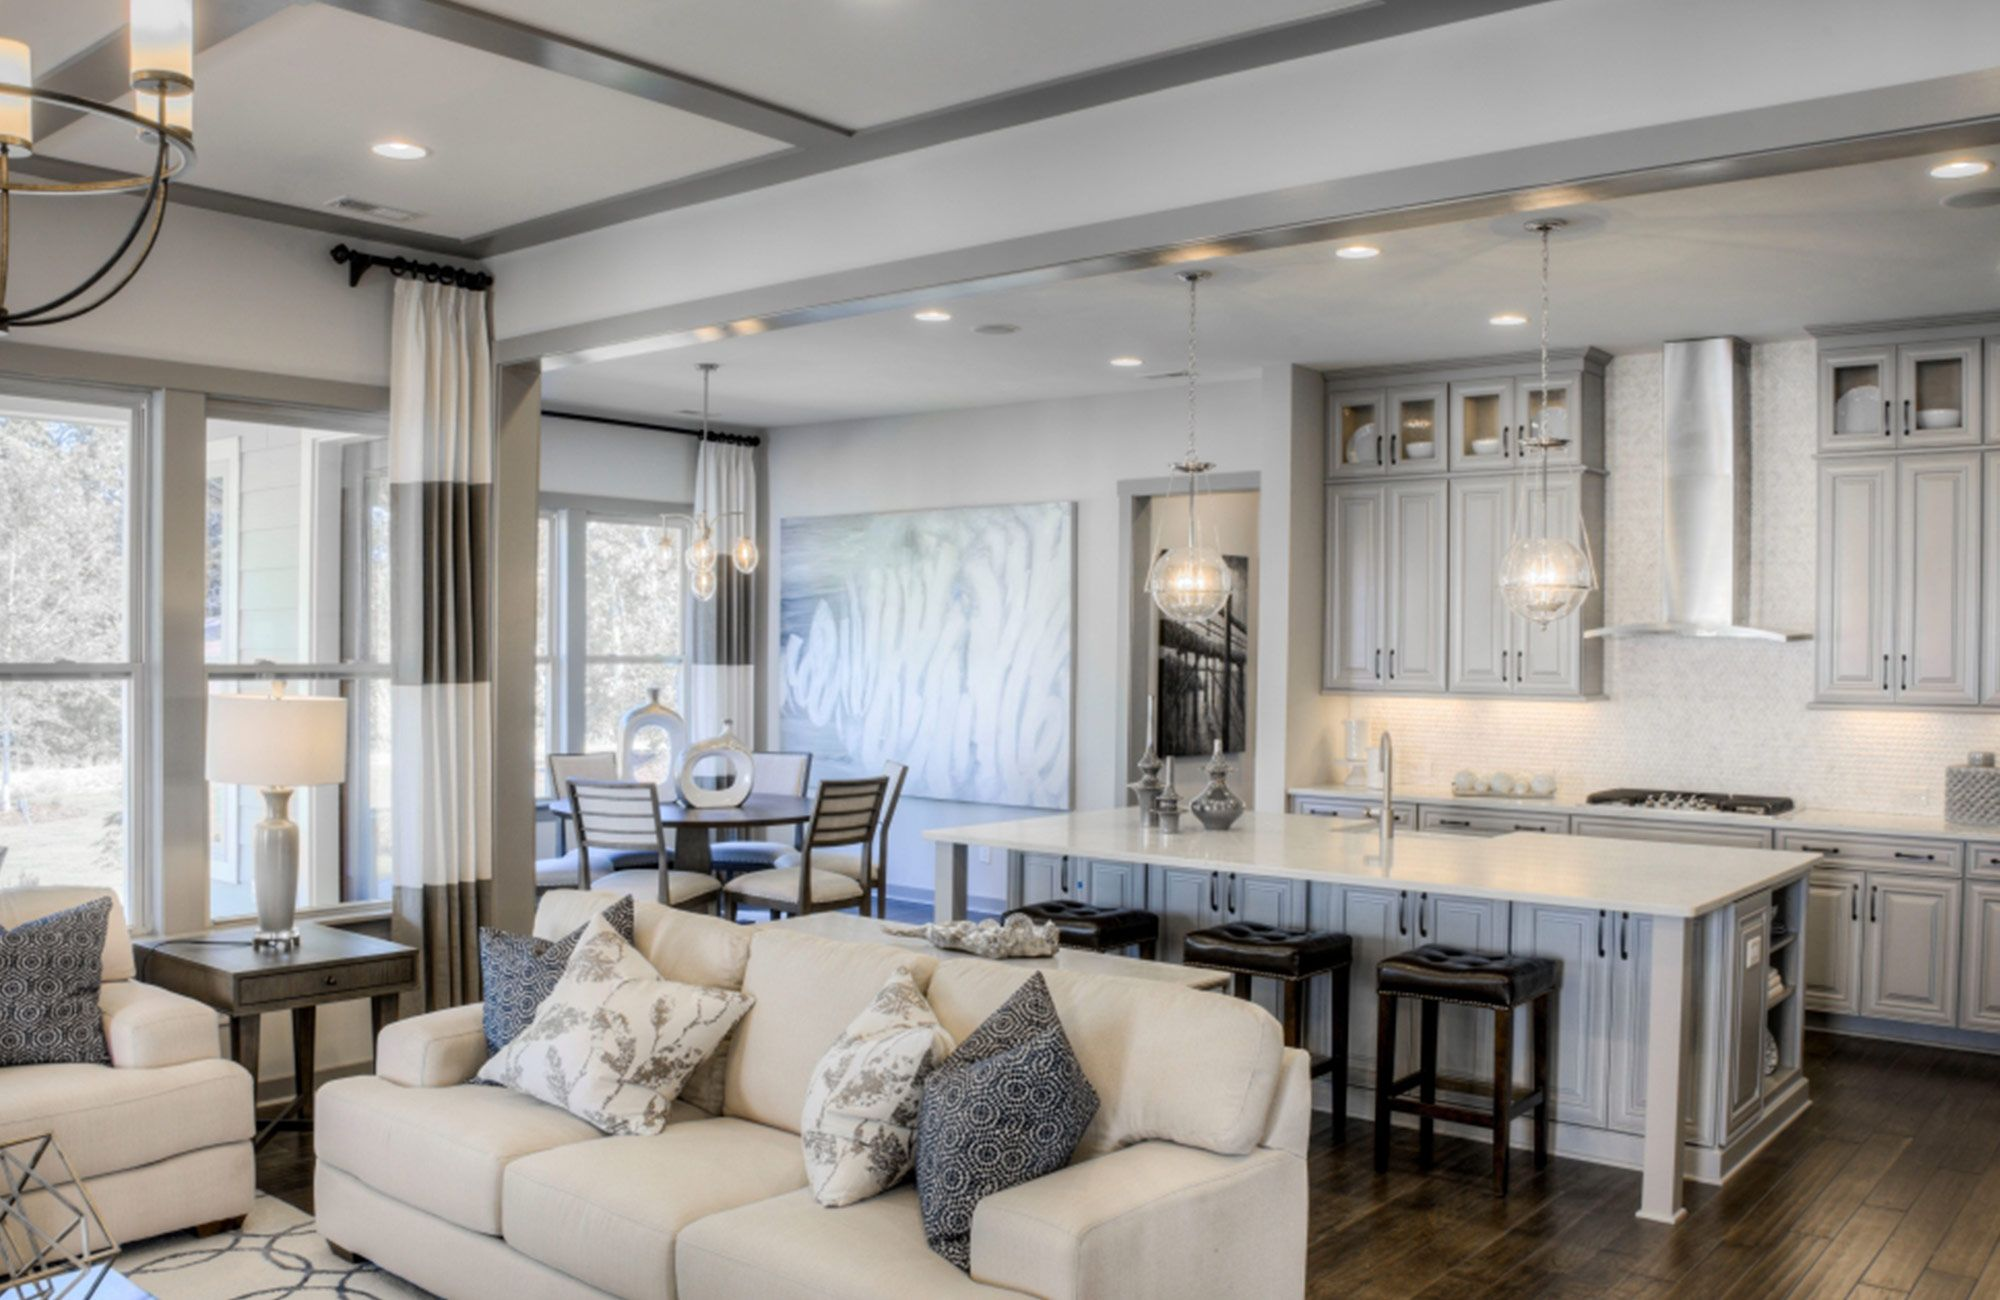 Living Area featured in The Harmony at Masons Bend By Fielding Homes in Charlotte, SC